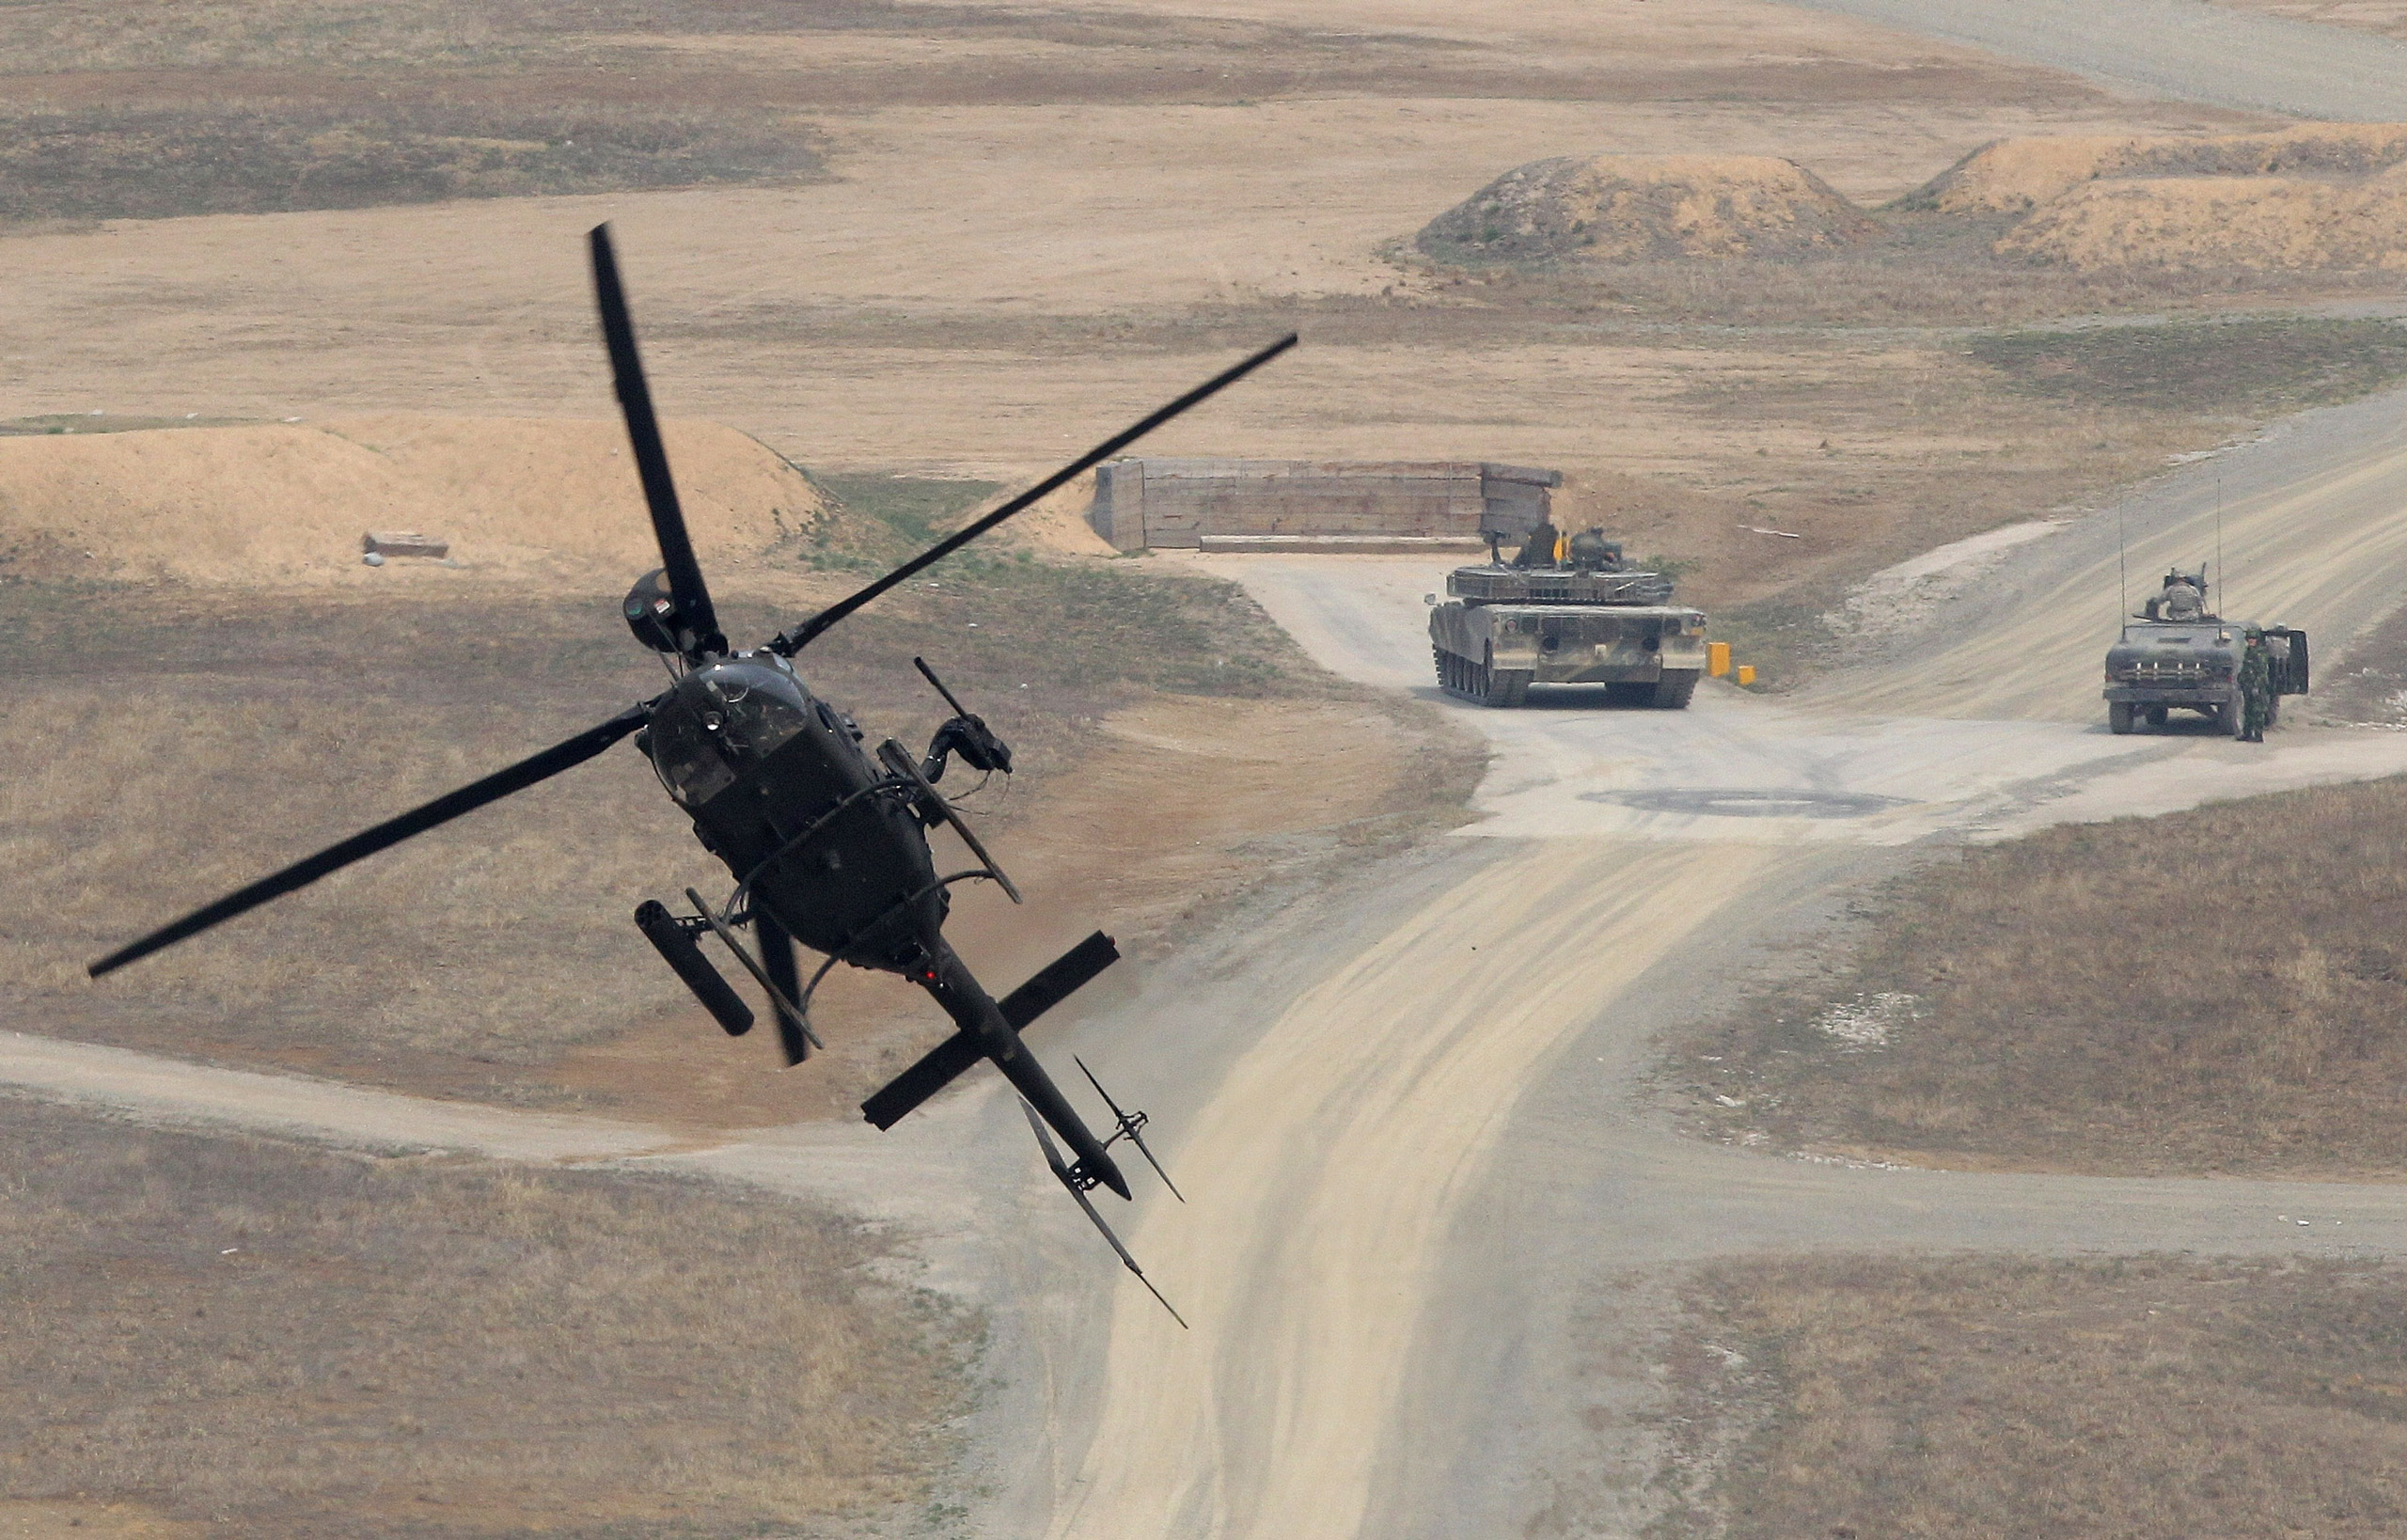 A Kiowa Warrior helicopter hover during the United States and South Korean Joint live fire Exercise at Rodriguez Range in Pocheon, South Korea, on Apr. 11, 2014.